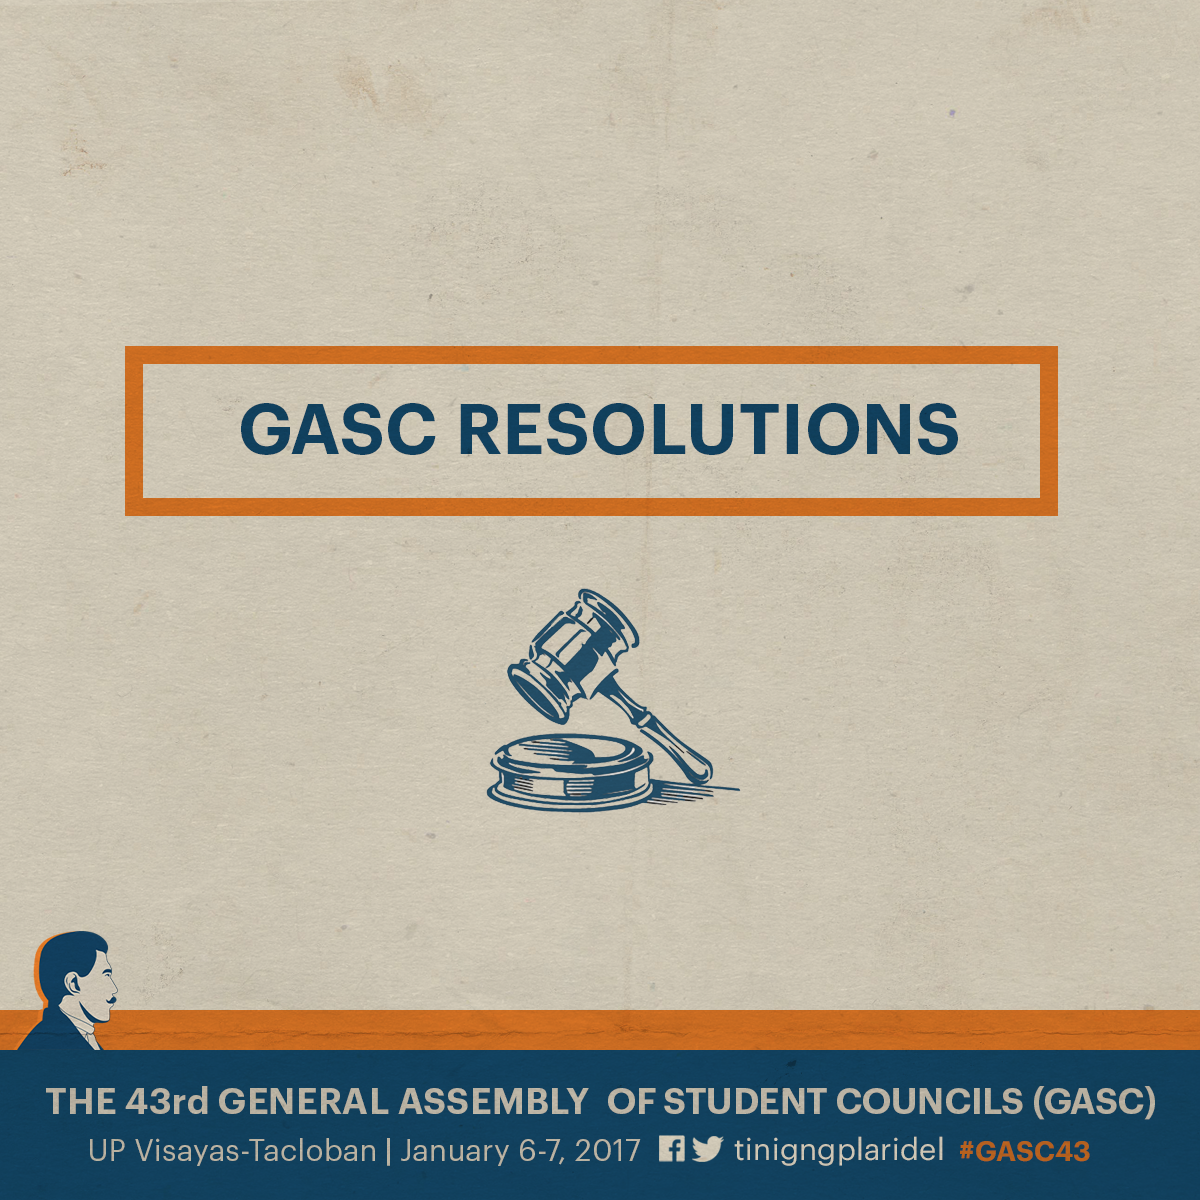 Oppositions aired on free education resolution at 43rd GASC